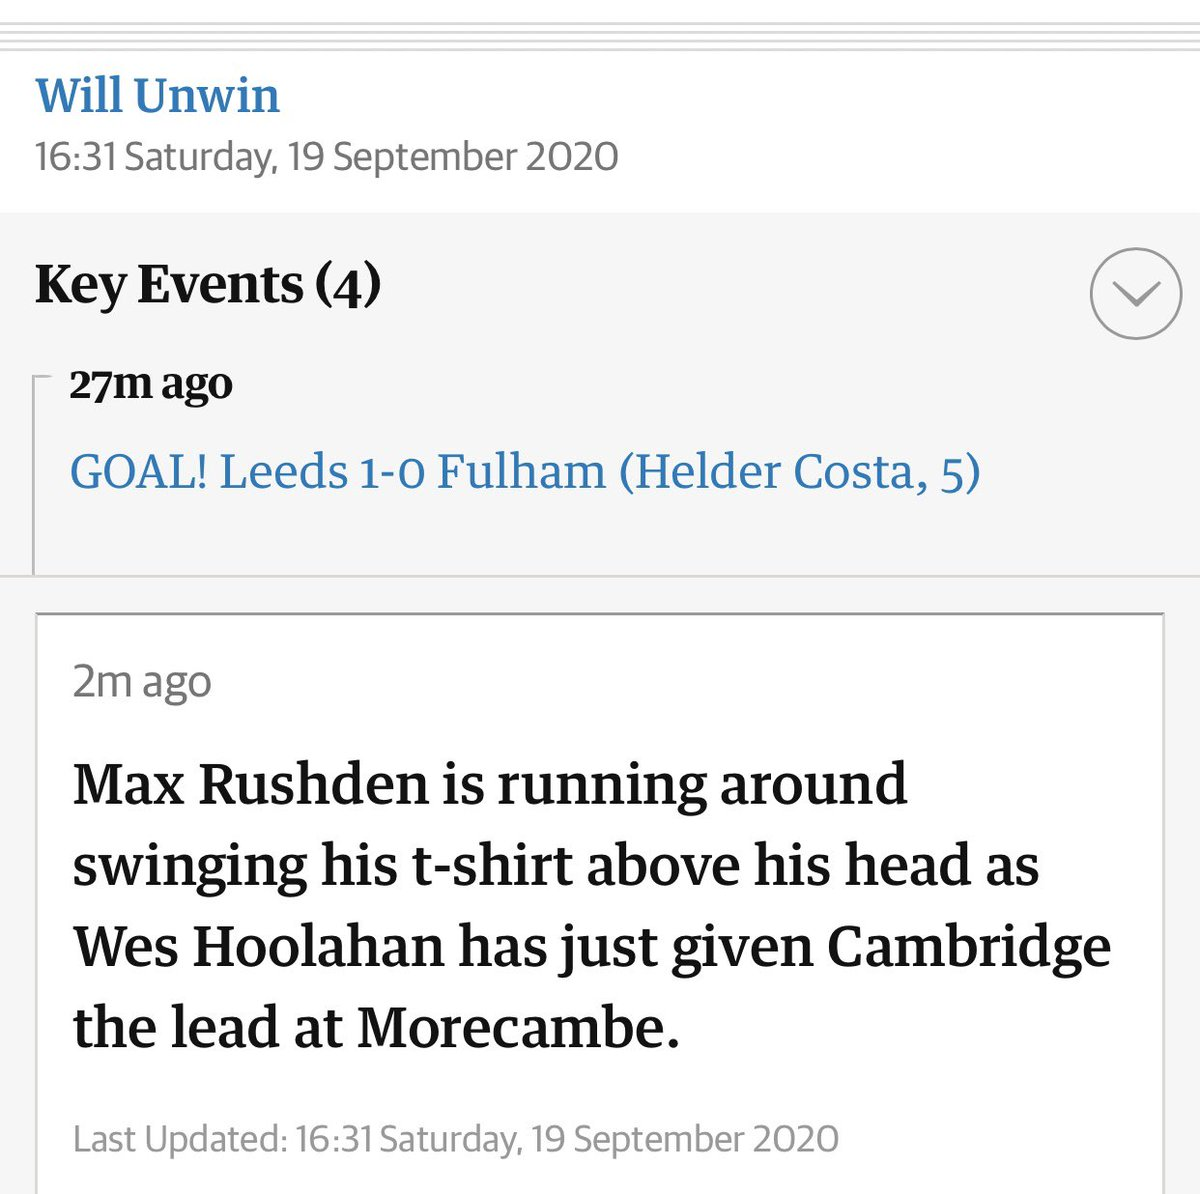 .@maxrushden a big day for newly signed stars in English football https://t.co/fv9KwlLBcC